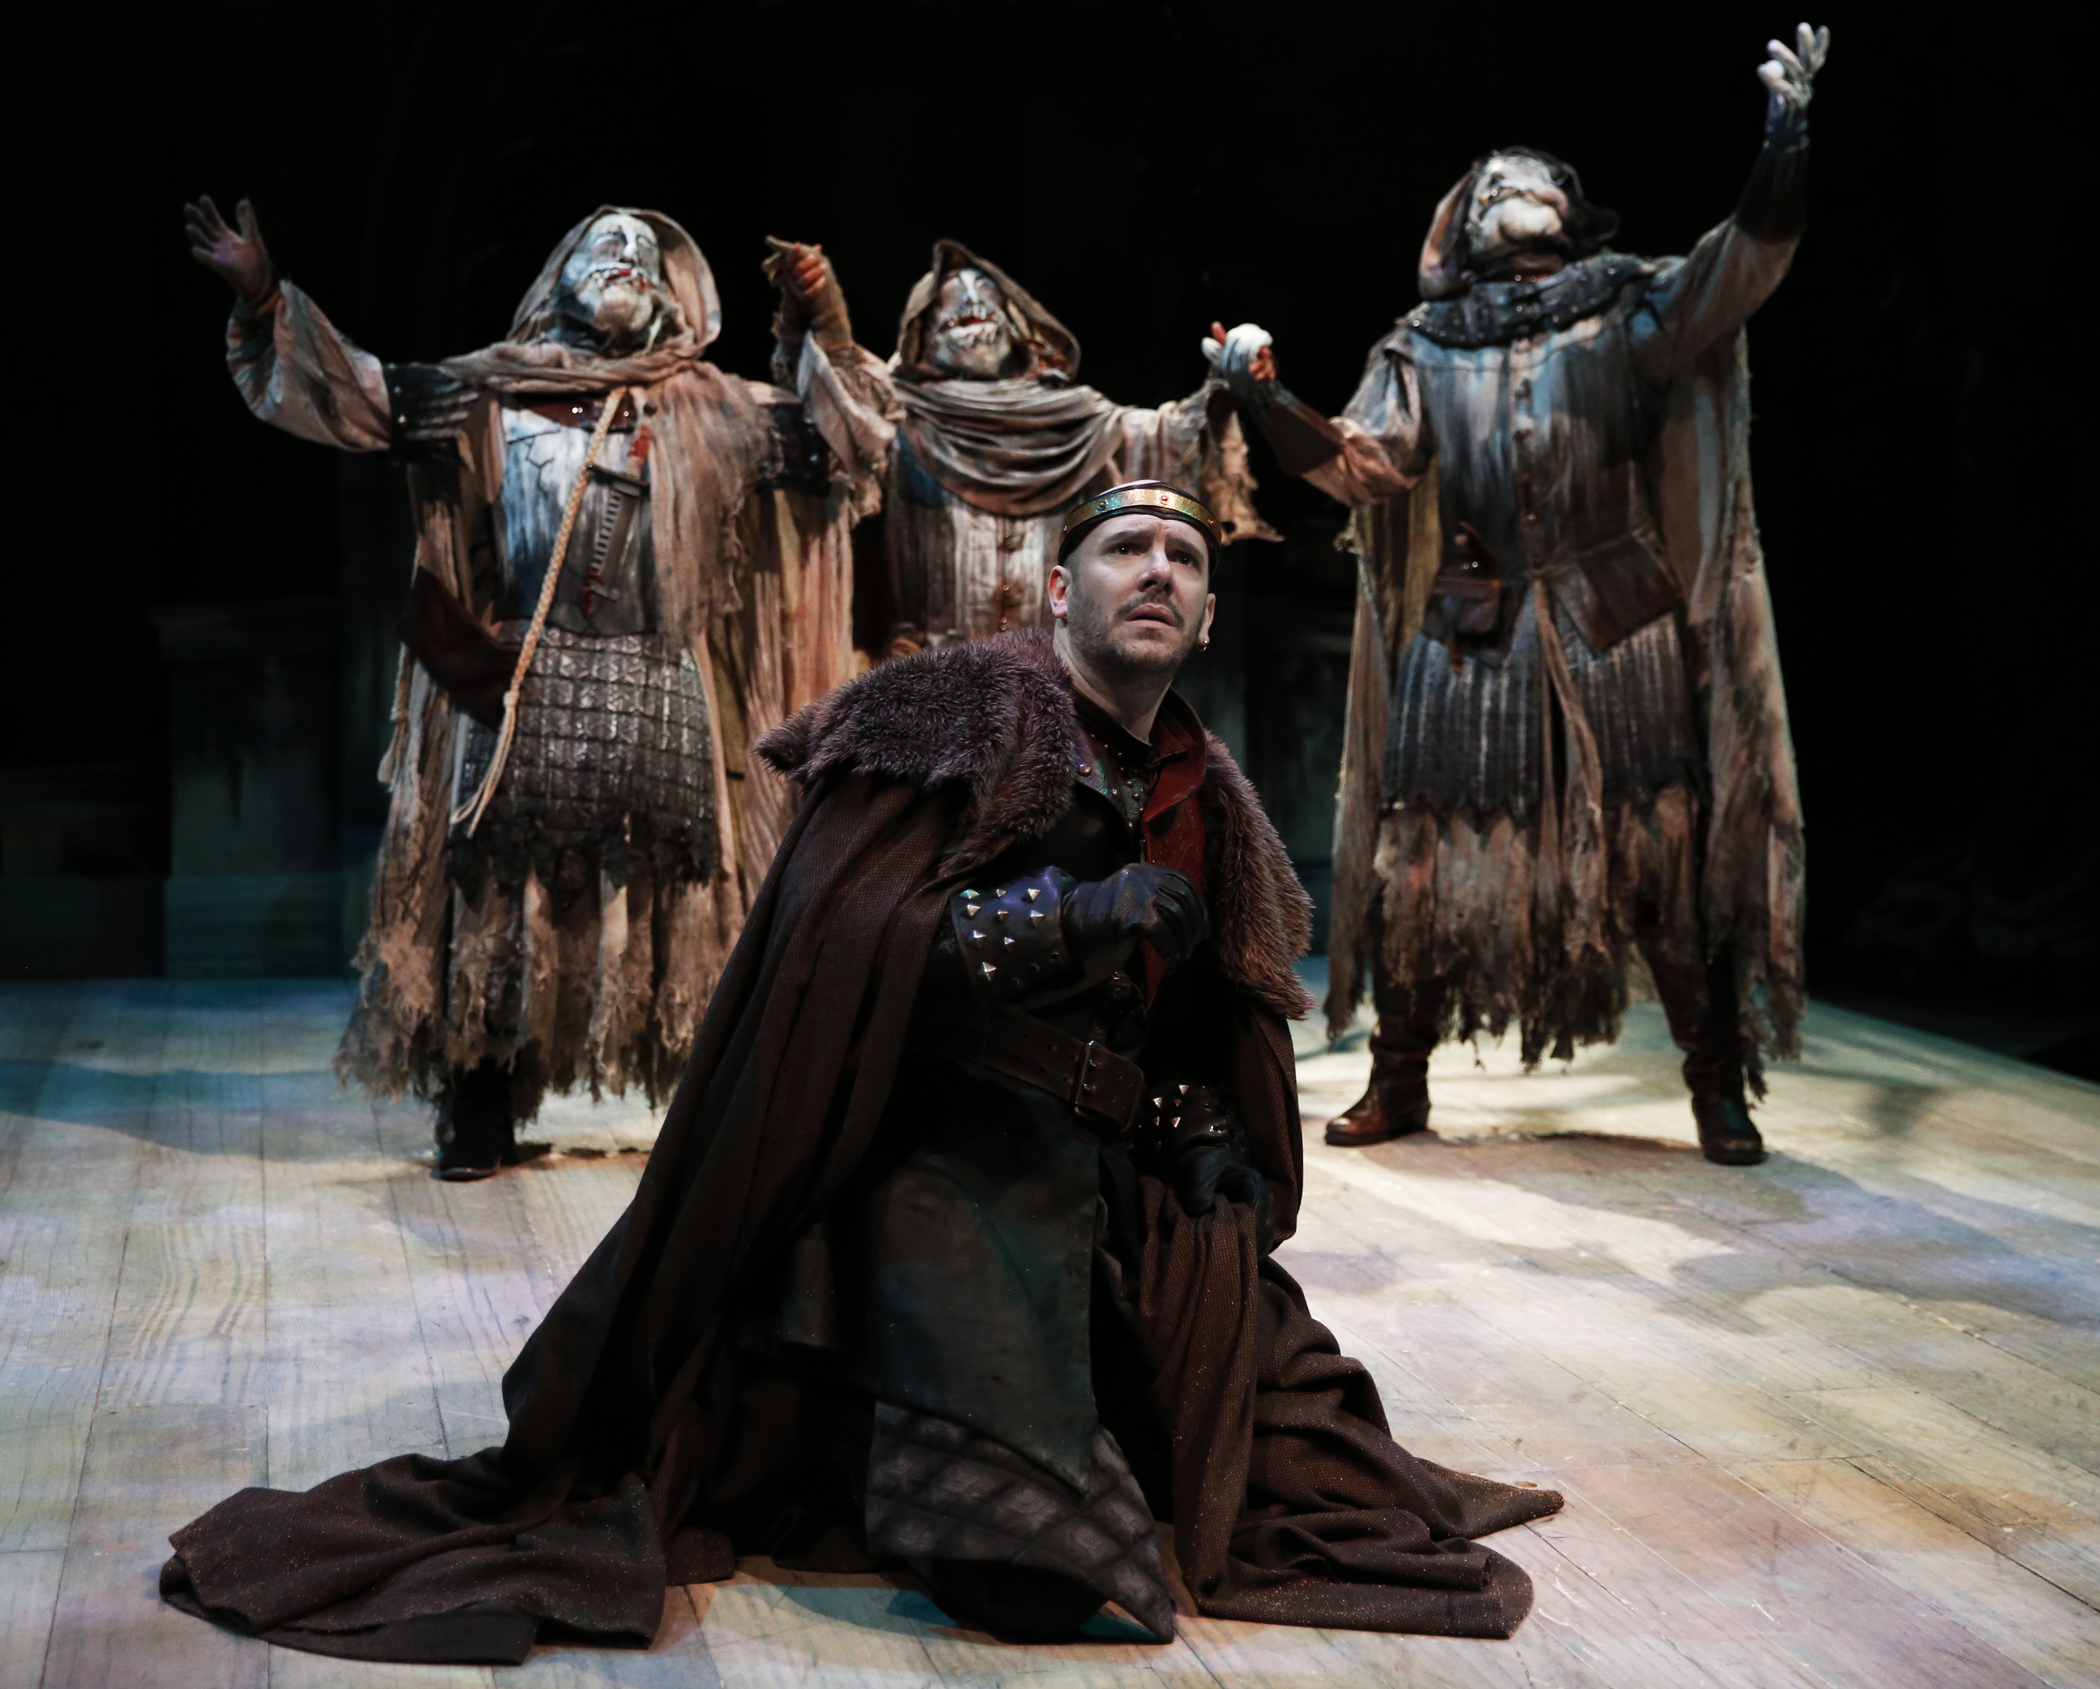 macbeth equivocation Macbeth, more than perhaps any of shakespeare's other plays, seems to have  been written  all of these themes can be said to equivocate, extending the  play's.